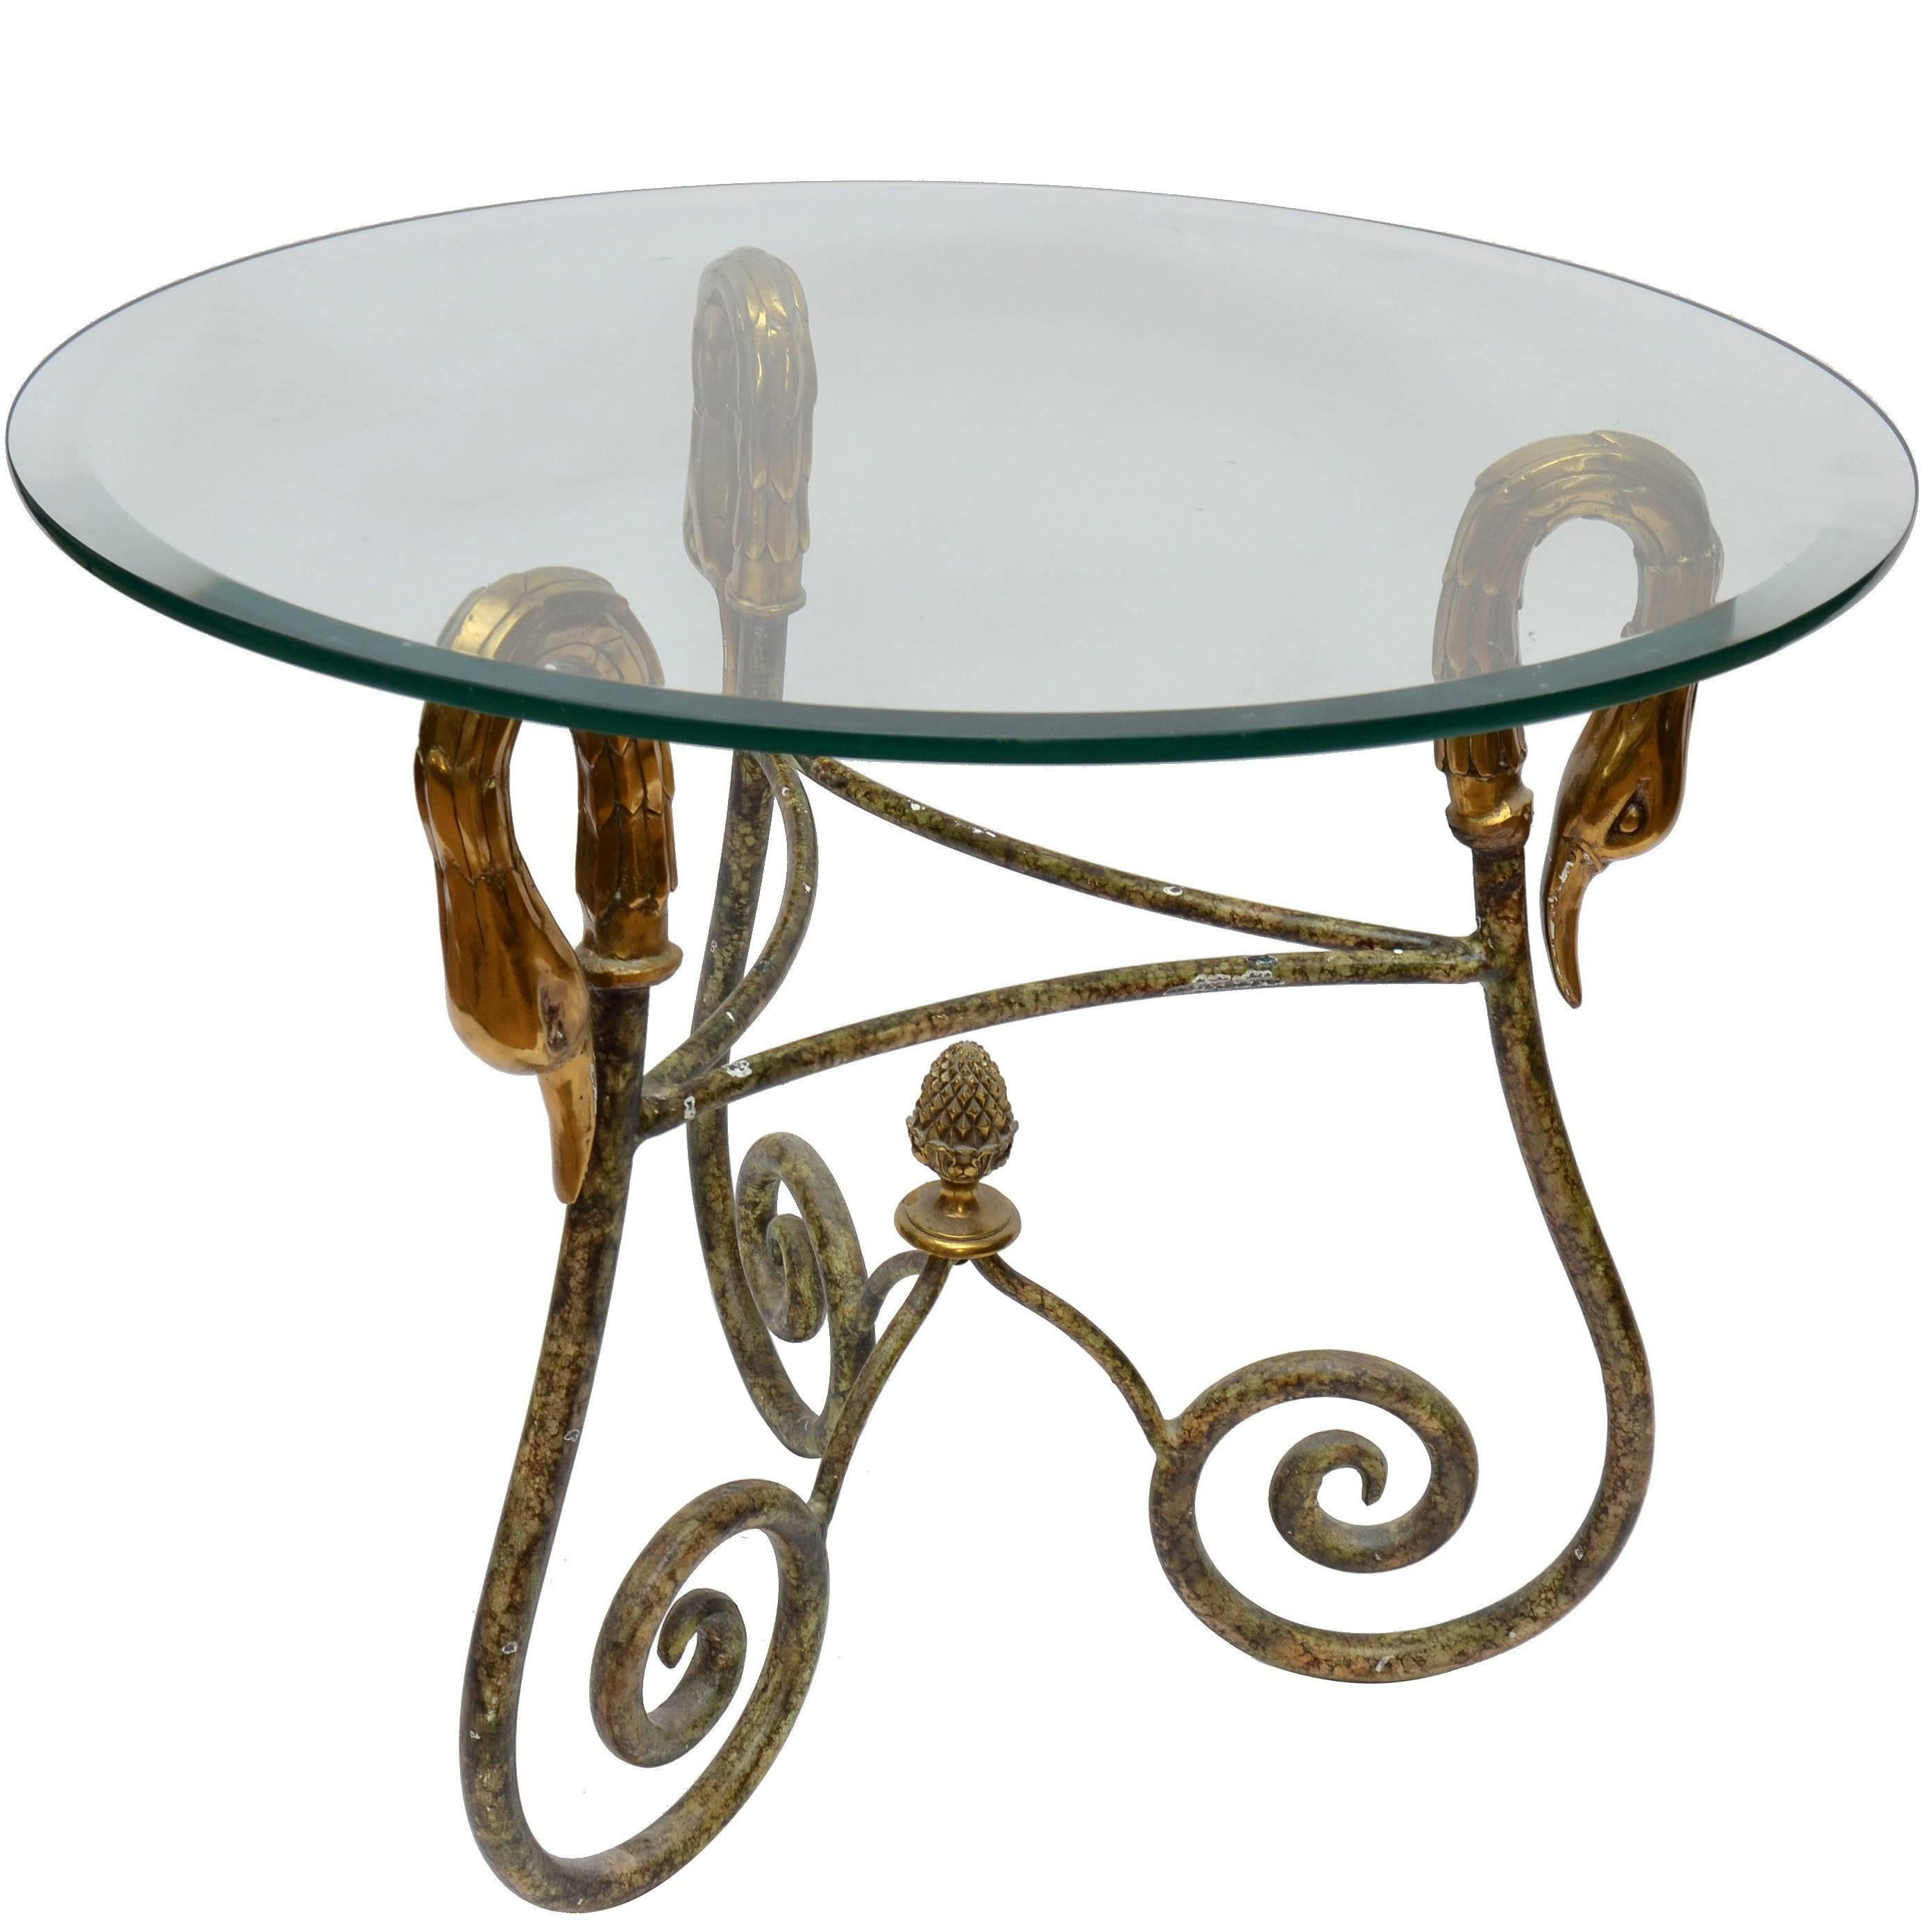 Wrought Iron Side Table From Italy With Brass Swan Heads